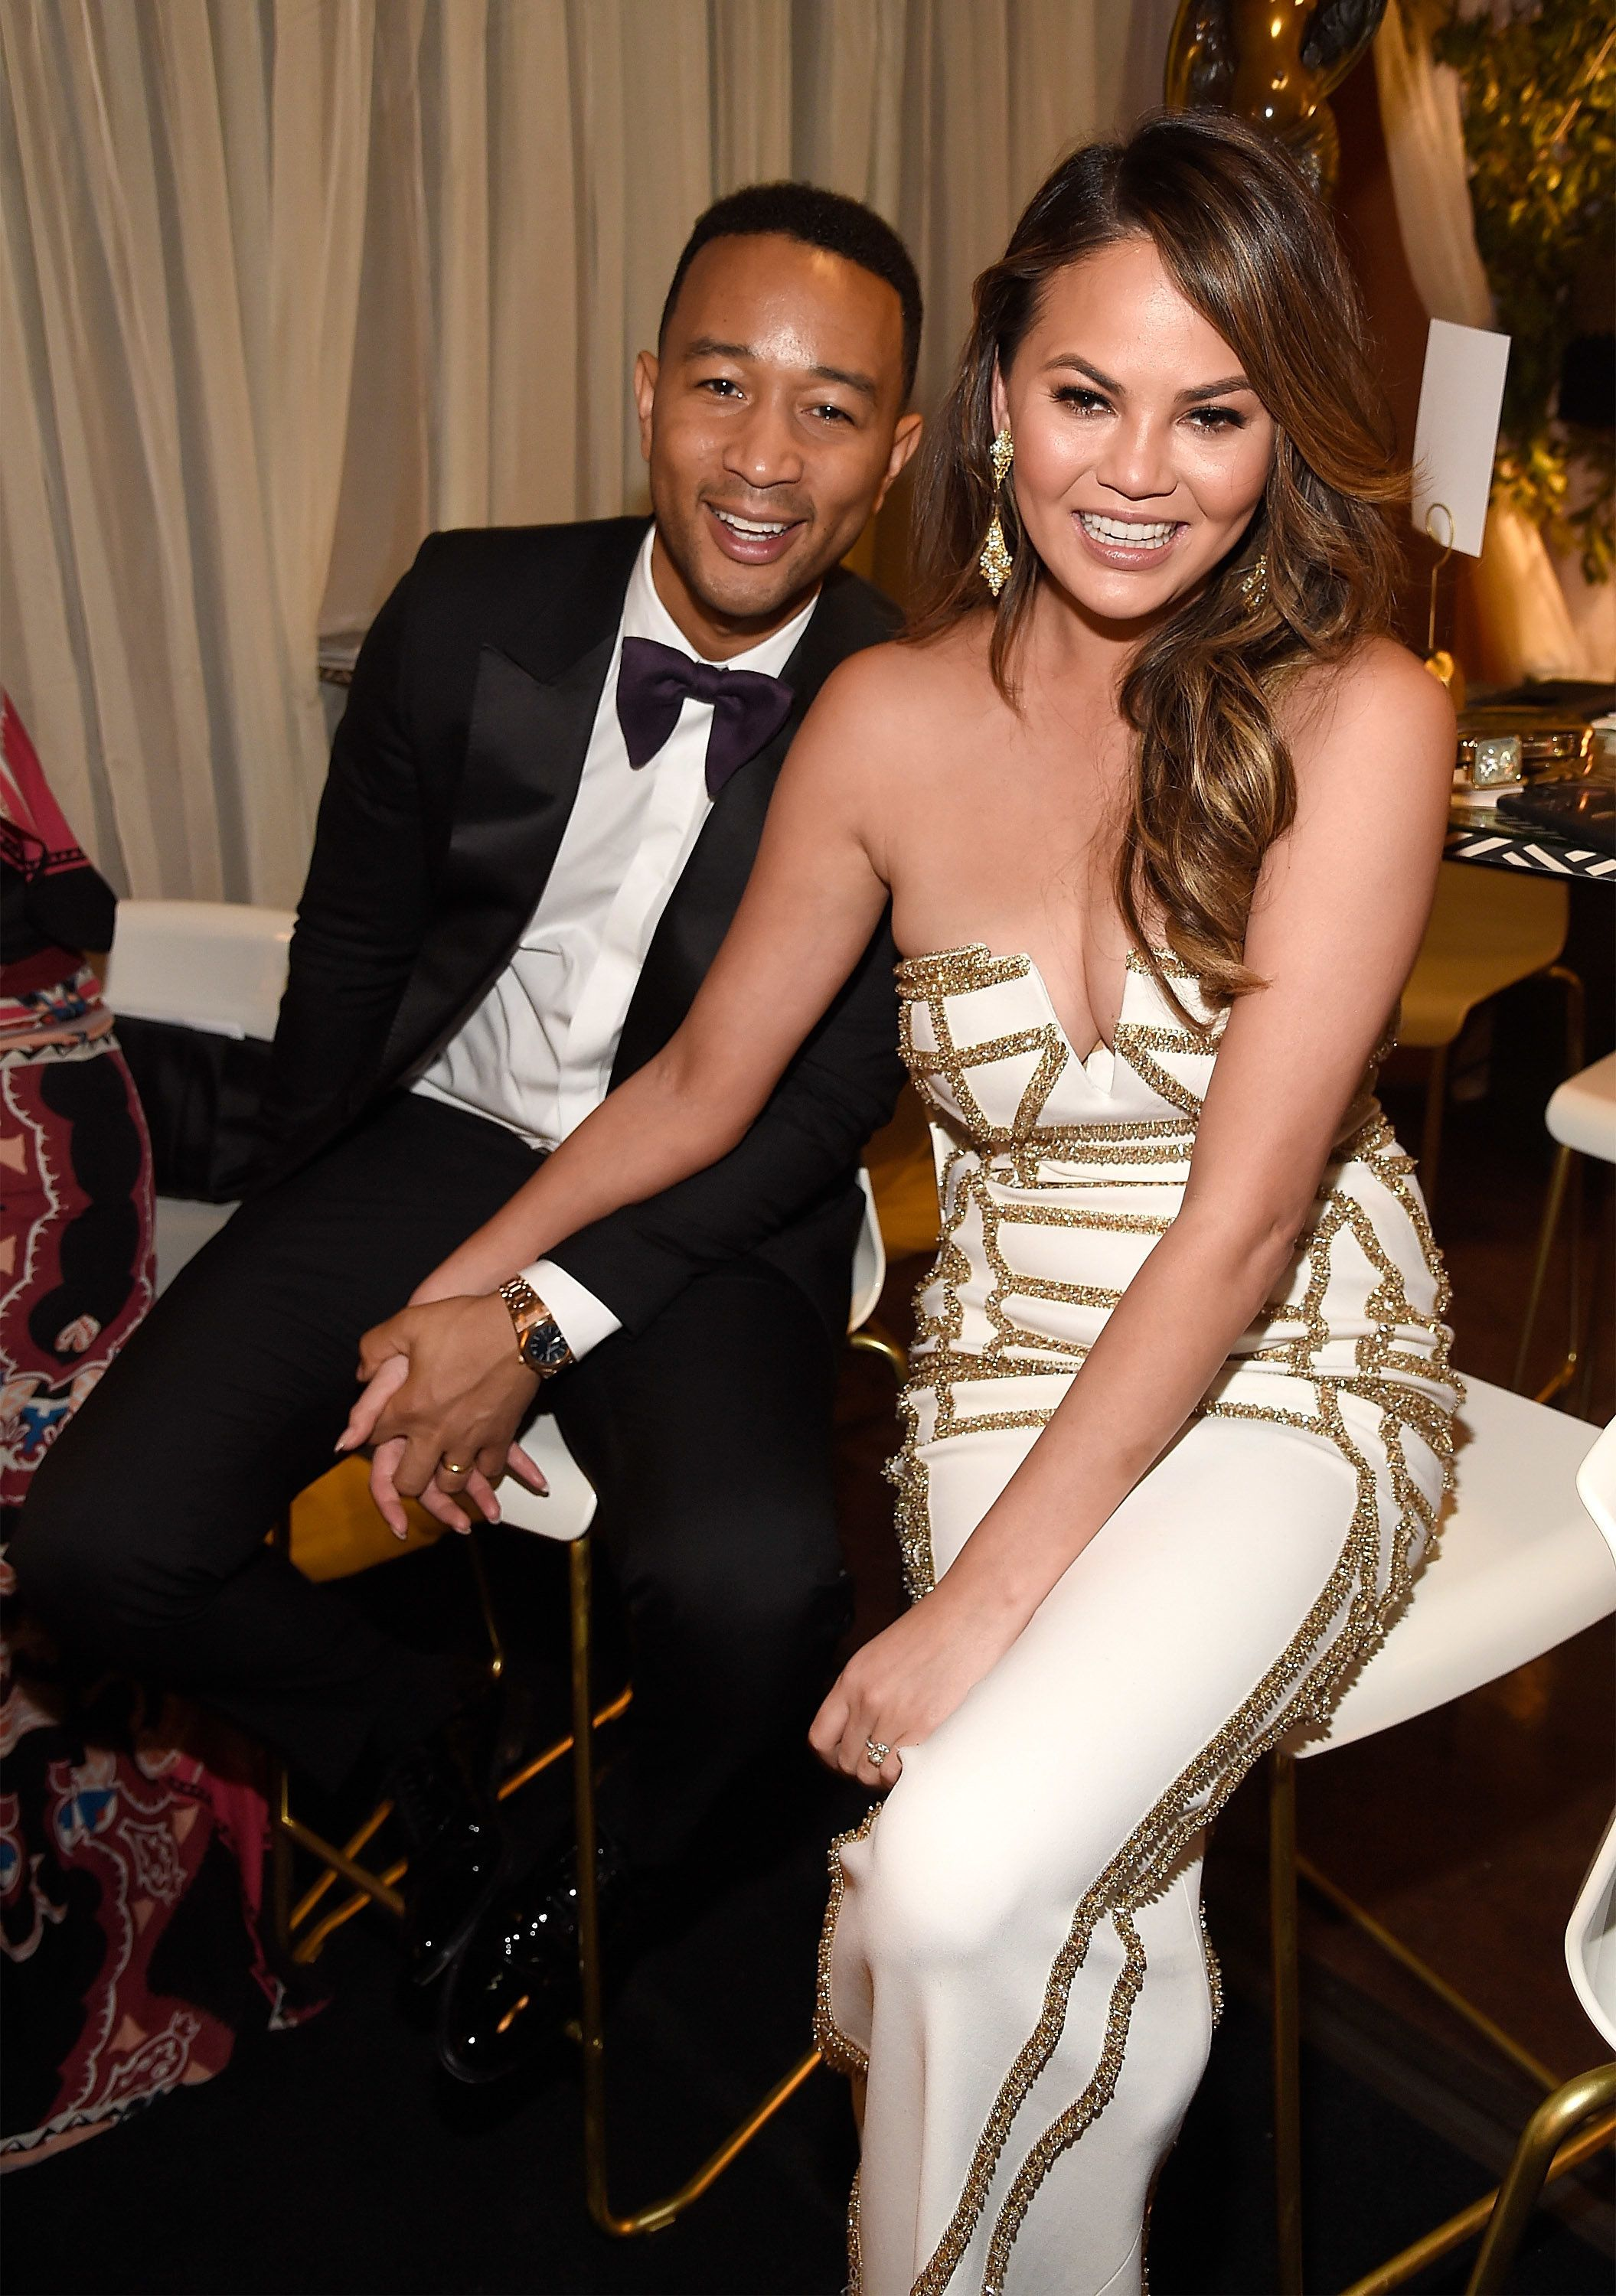 NEW YORK, NY - JUNE 11:  John Legend and Chrissy Teigen attend the 2017 Tony Awards at Radio City Music Hall on June 11, 2017 in New York City.  (Photo by Kevin Mazur/Getty Images for Tony Awards Productions)